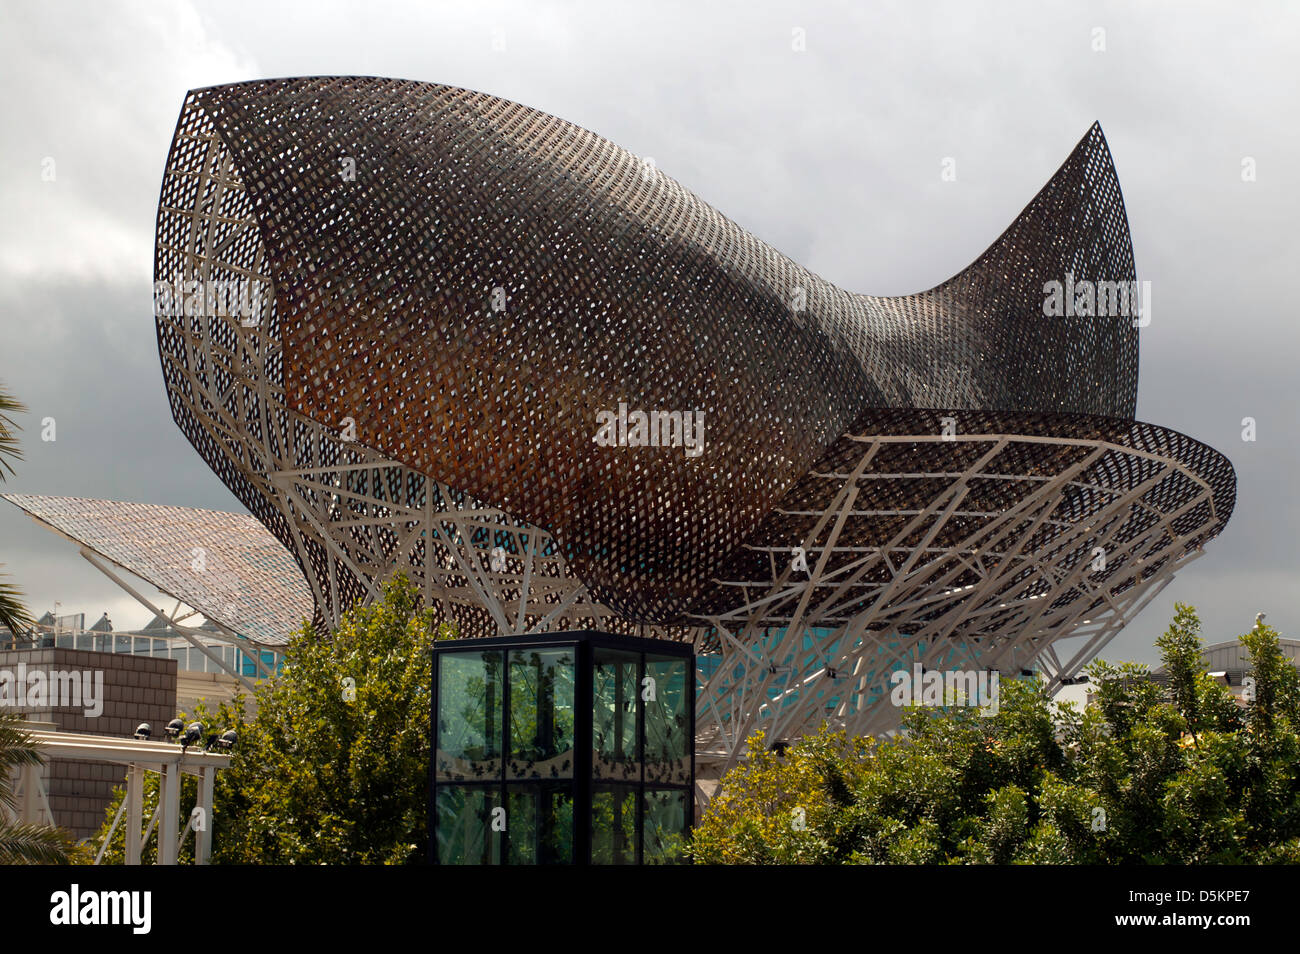 'El Peix' (The Fish), by Frank Gehry  located in front of the Hotel Arts, at the Barceloneta neighborhood, - Stock Image